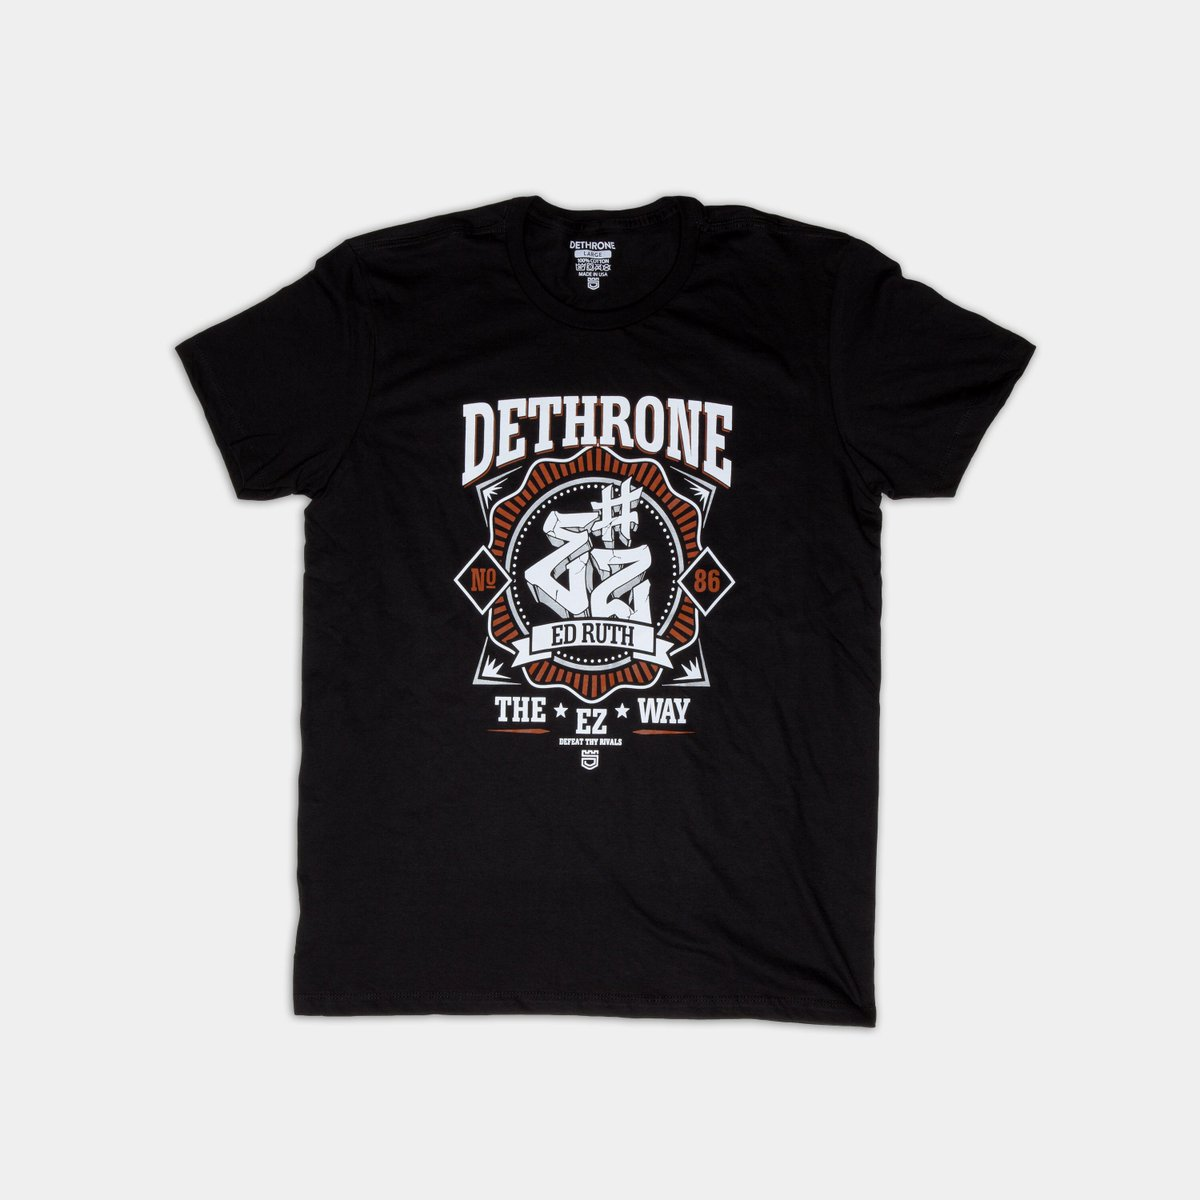 Stoked for @edruth67 fighting on @BellatorMMA tonight! Get Ed's signature shirt here: dethrone.com/products/ez.